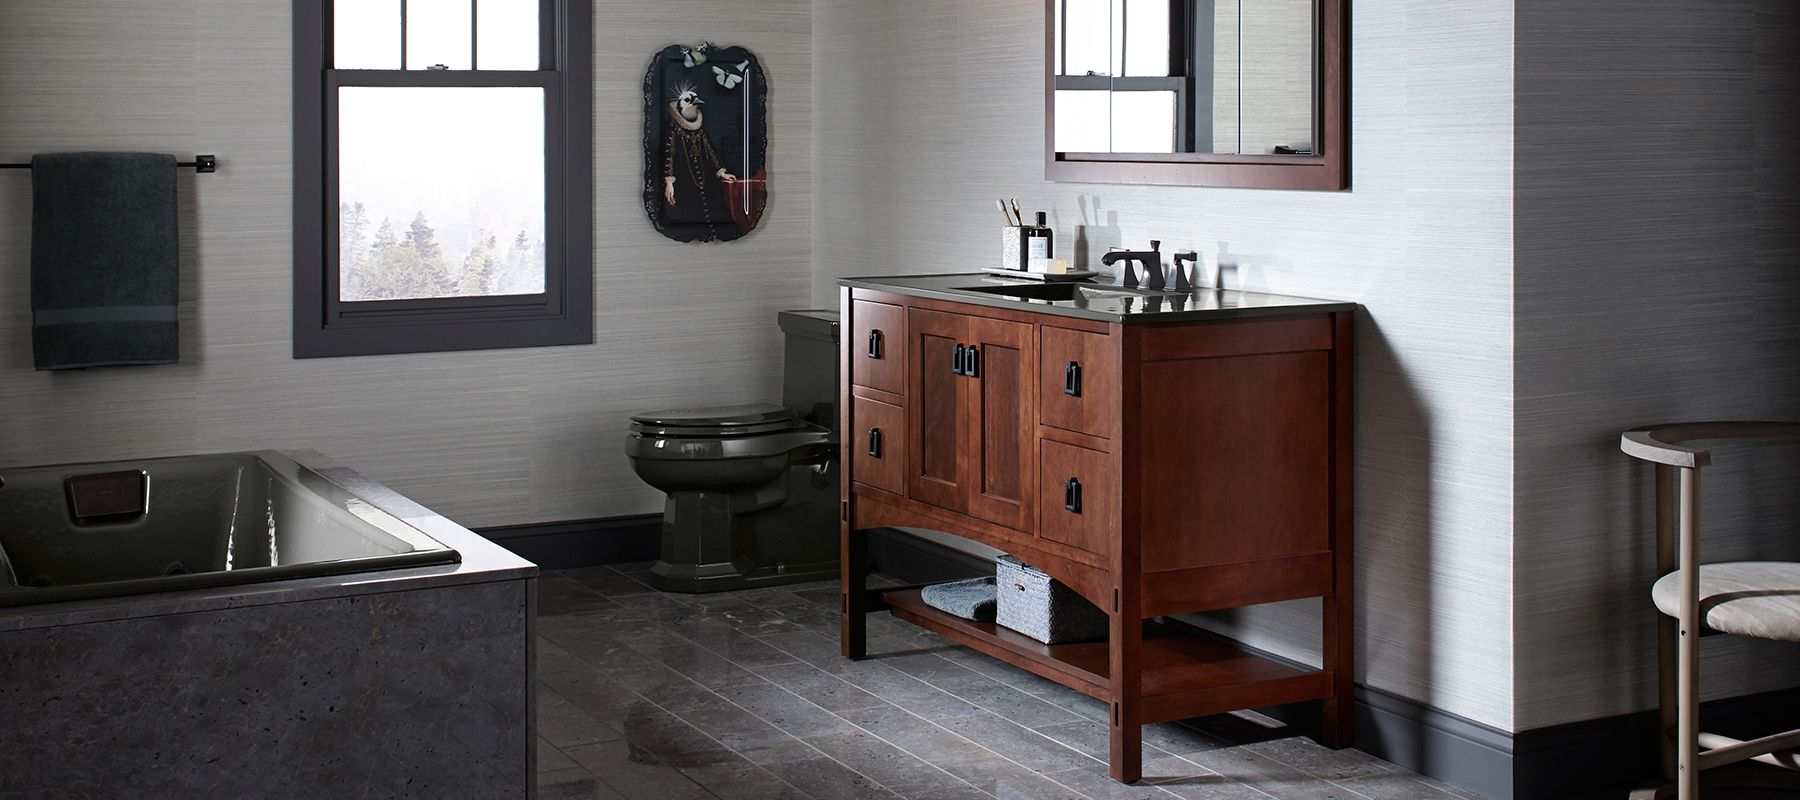 Bathroom Vanities Images bathroom vanities |bathroom | kohler